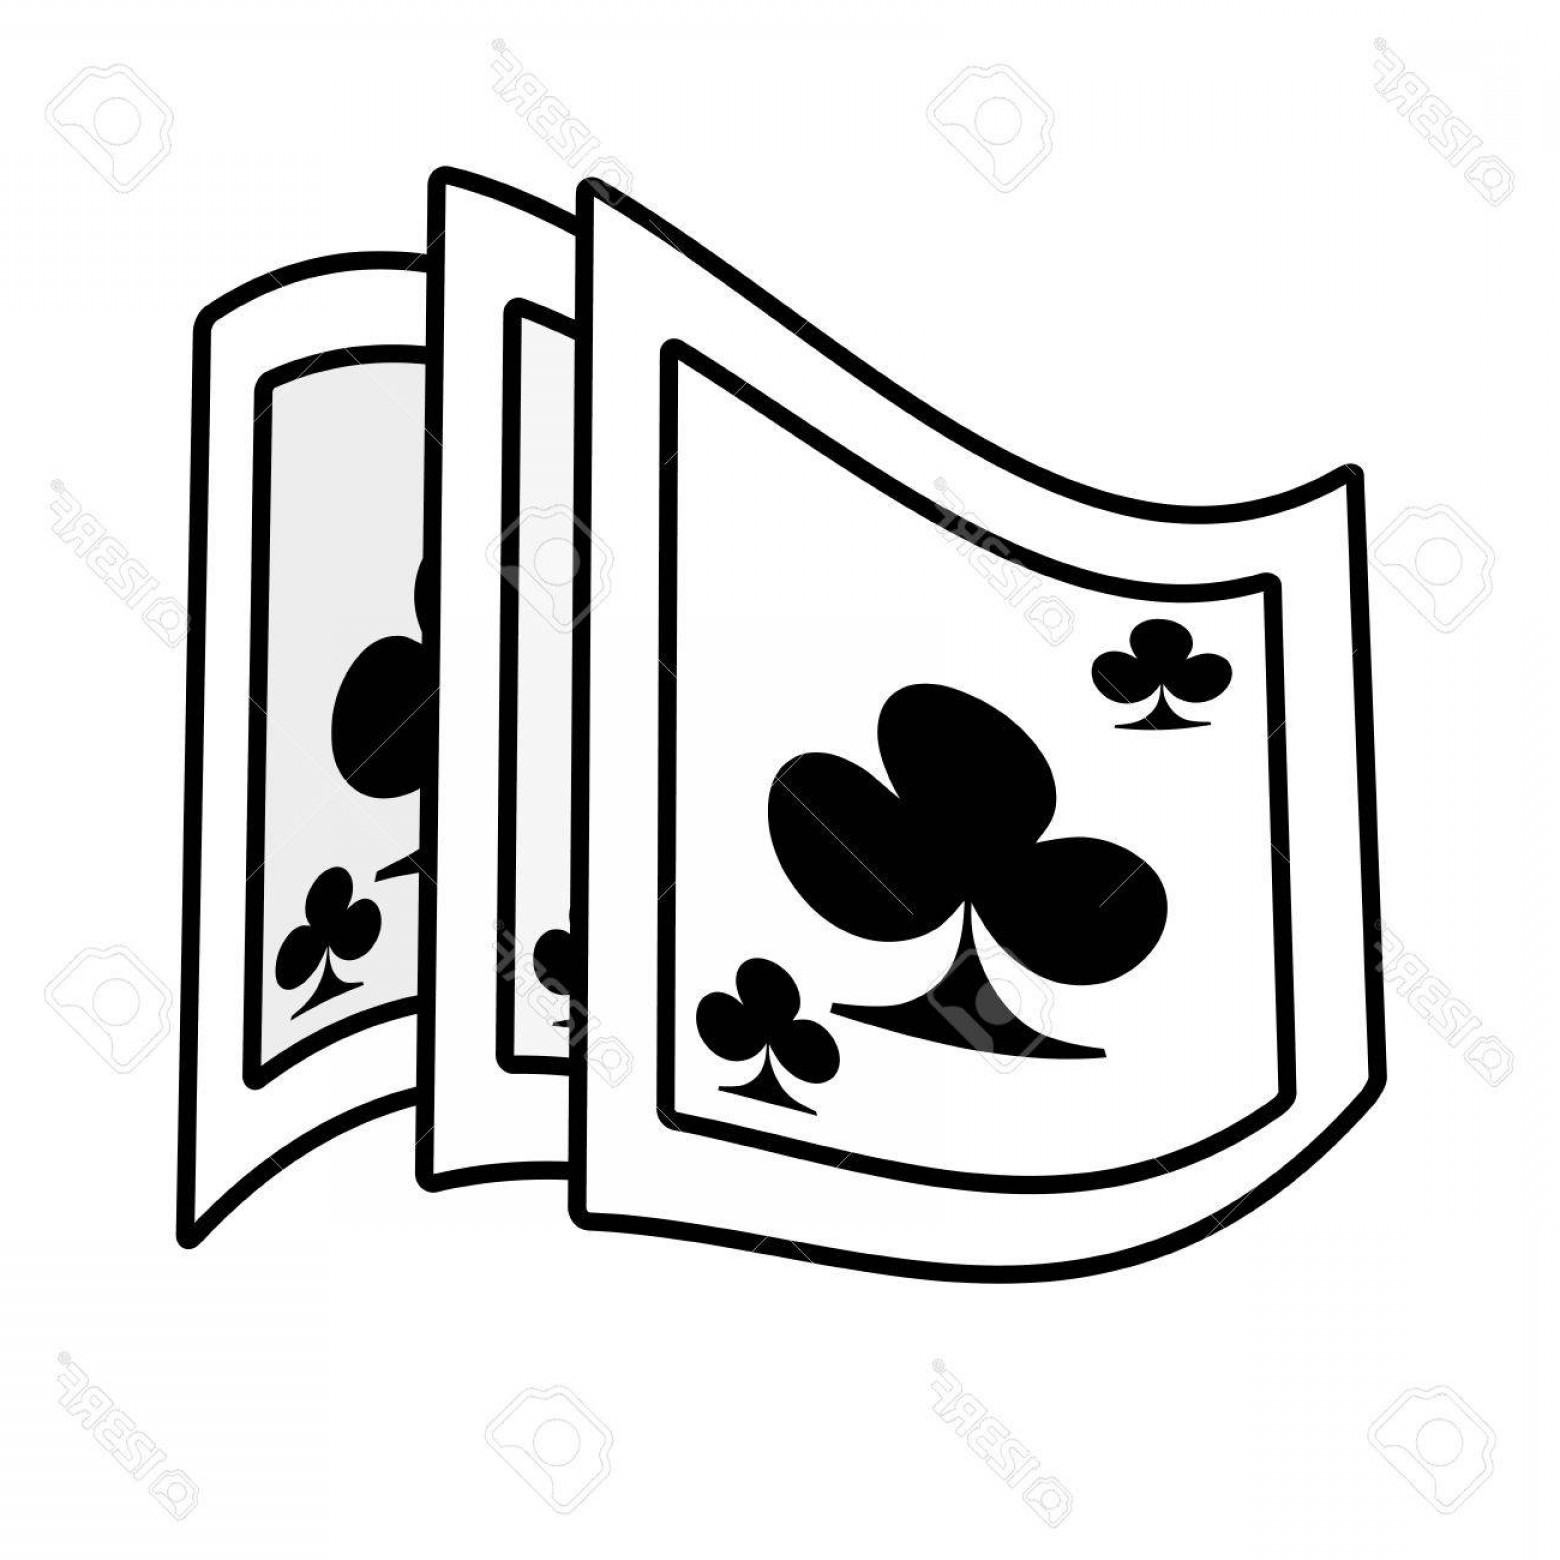 10 Playing Card Vector: Photostock Vector Poker Playing Card Magician Outline Vector Illustration Eps